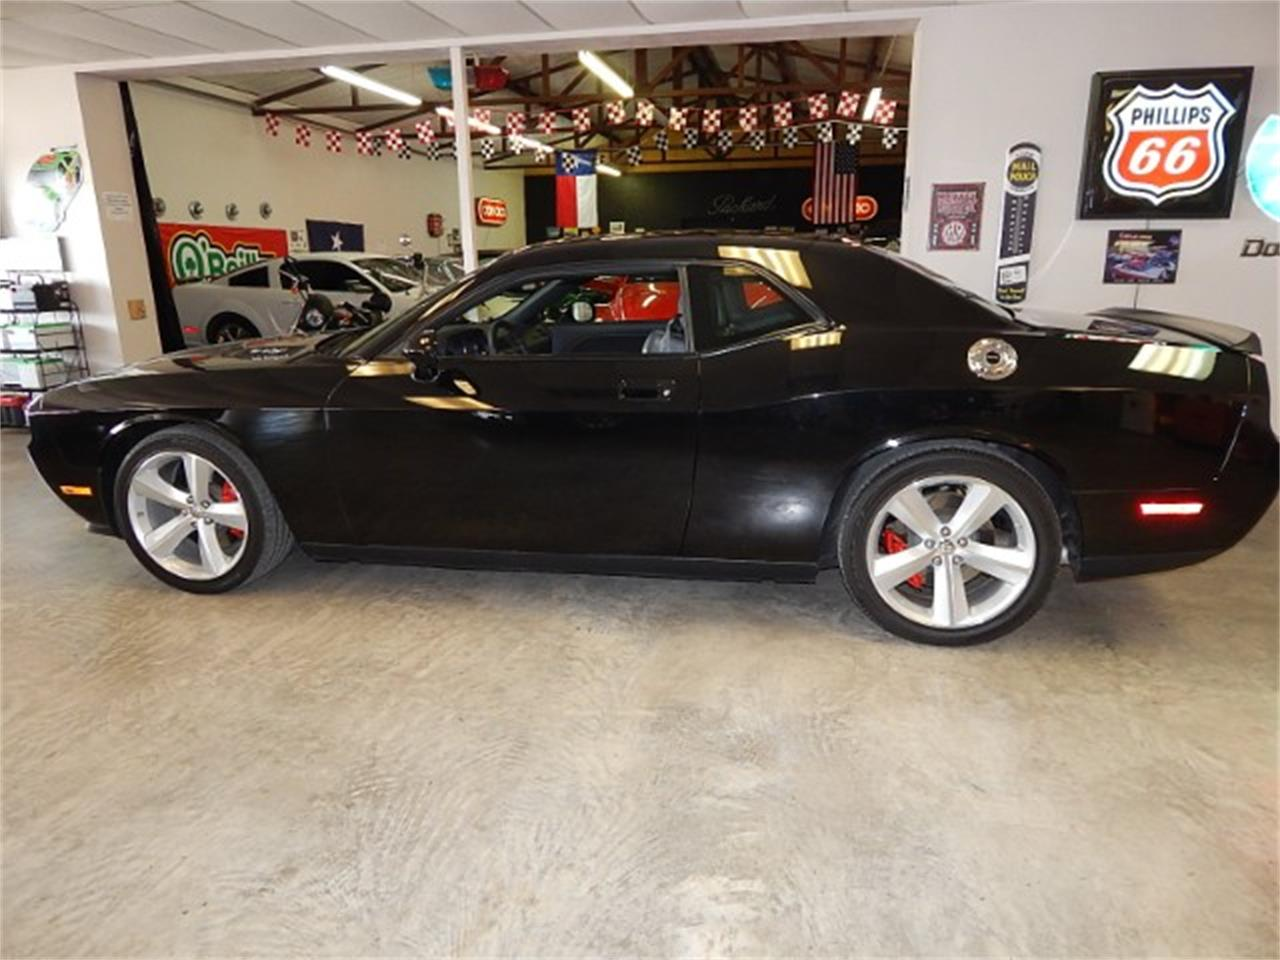 2008 Dodge Challenger for sale in Wichita Falls, TX – photo 13